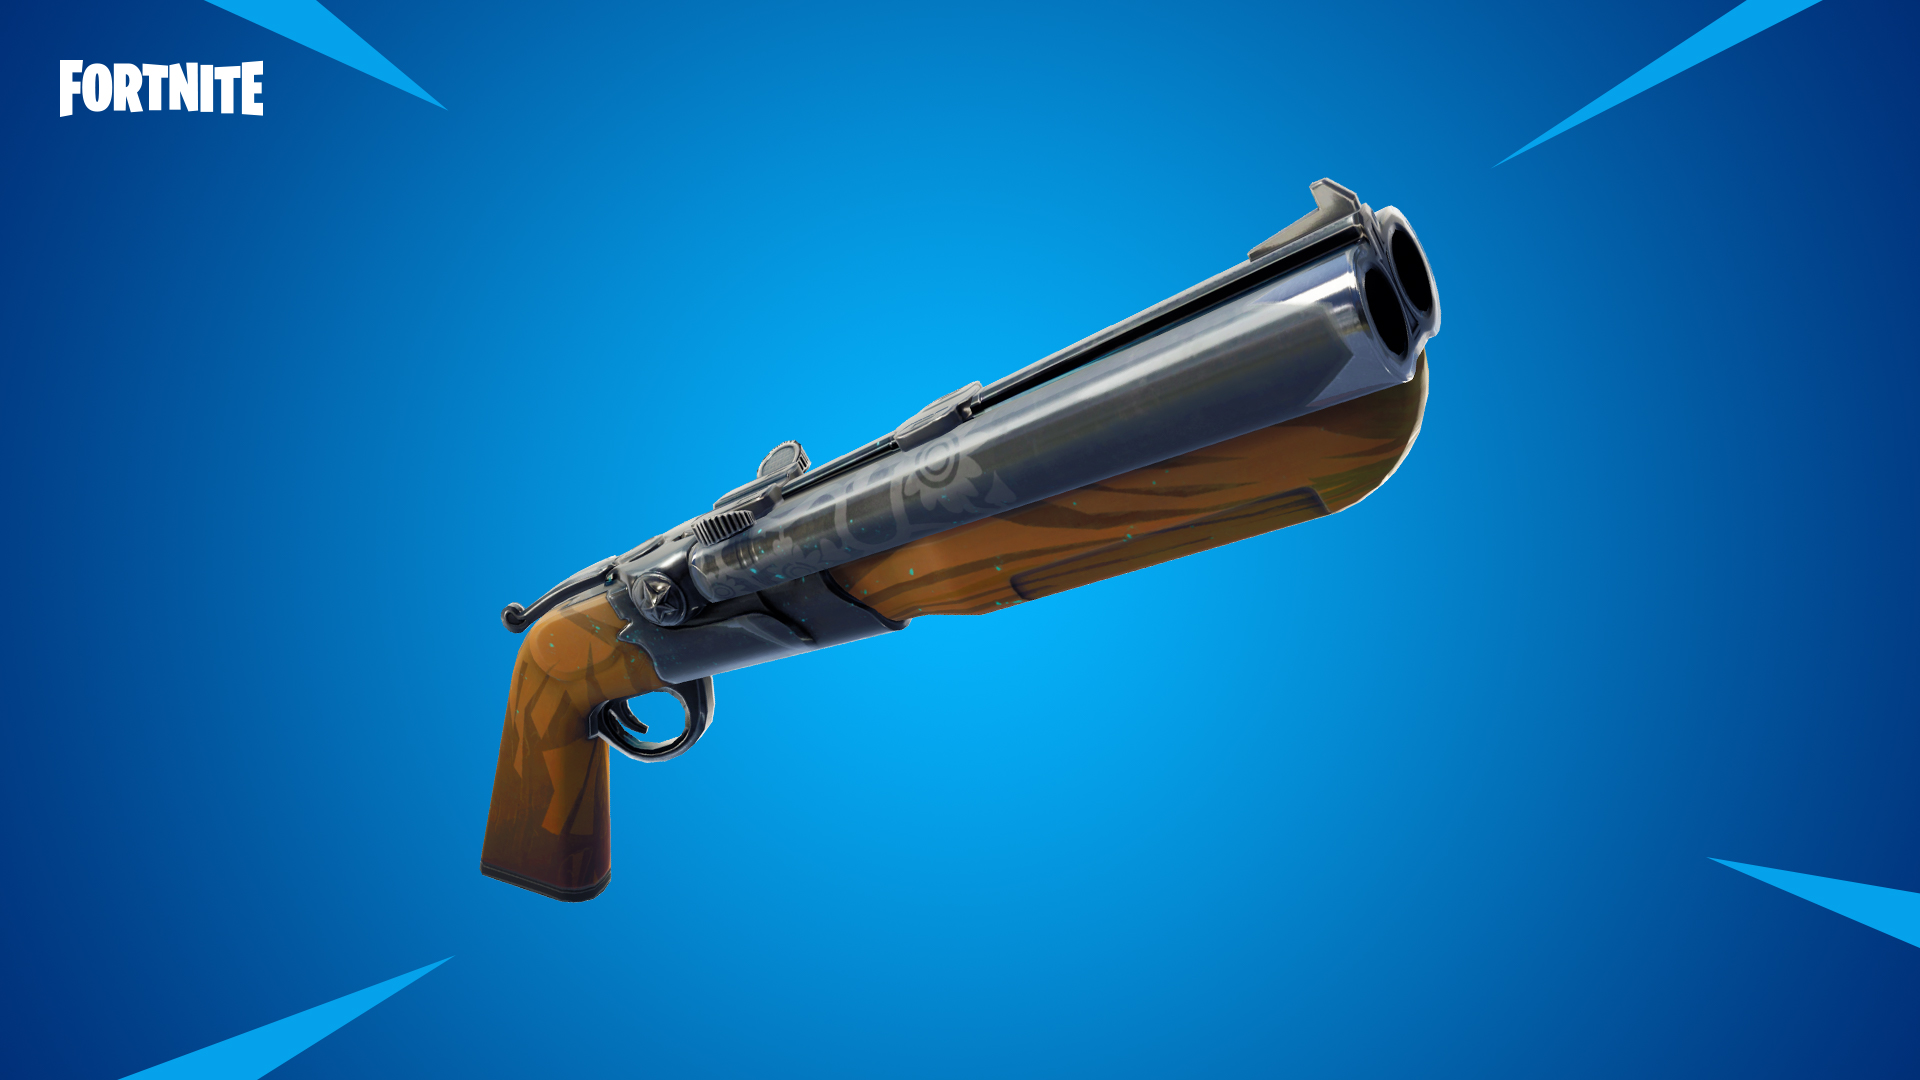 Fortnite v5.20 Patch - Double Barrel Shotgun